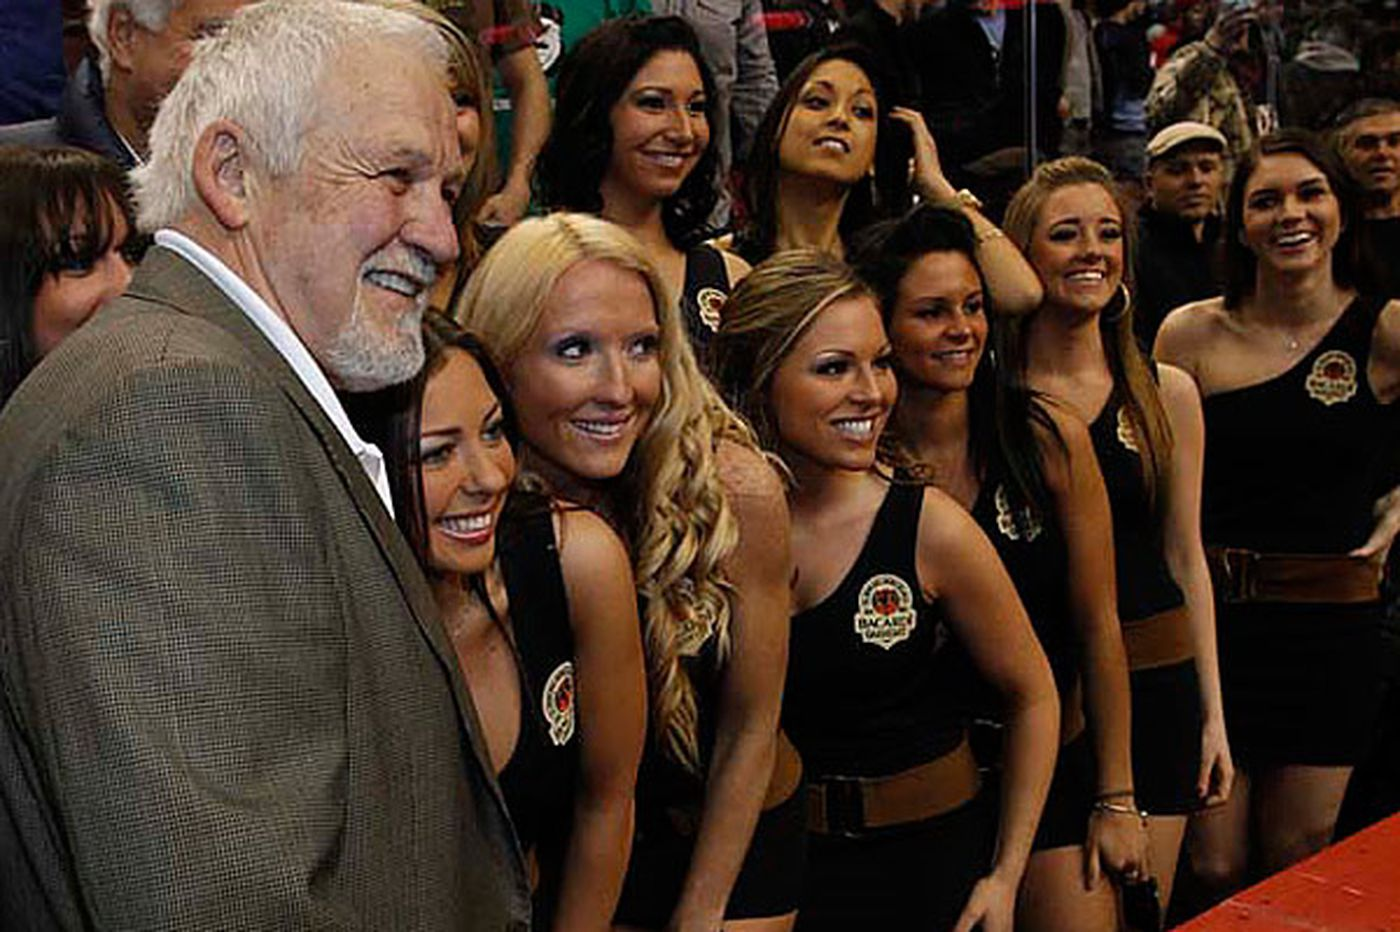 Wing Bowl XXI: New format revealed